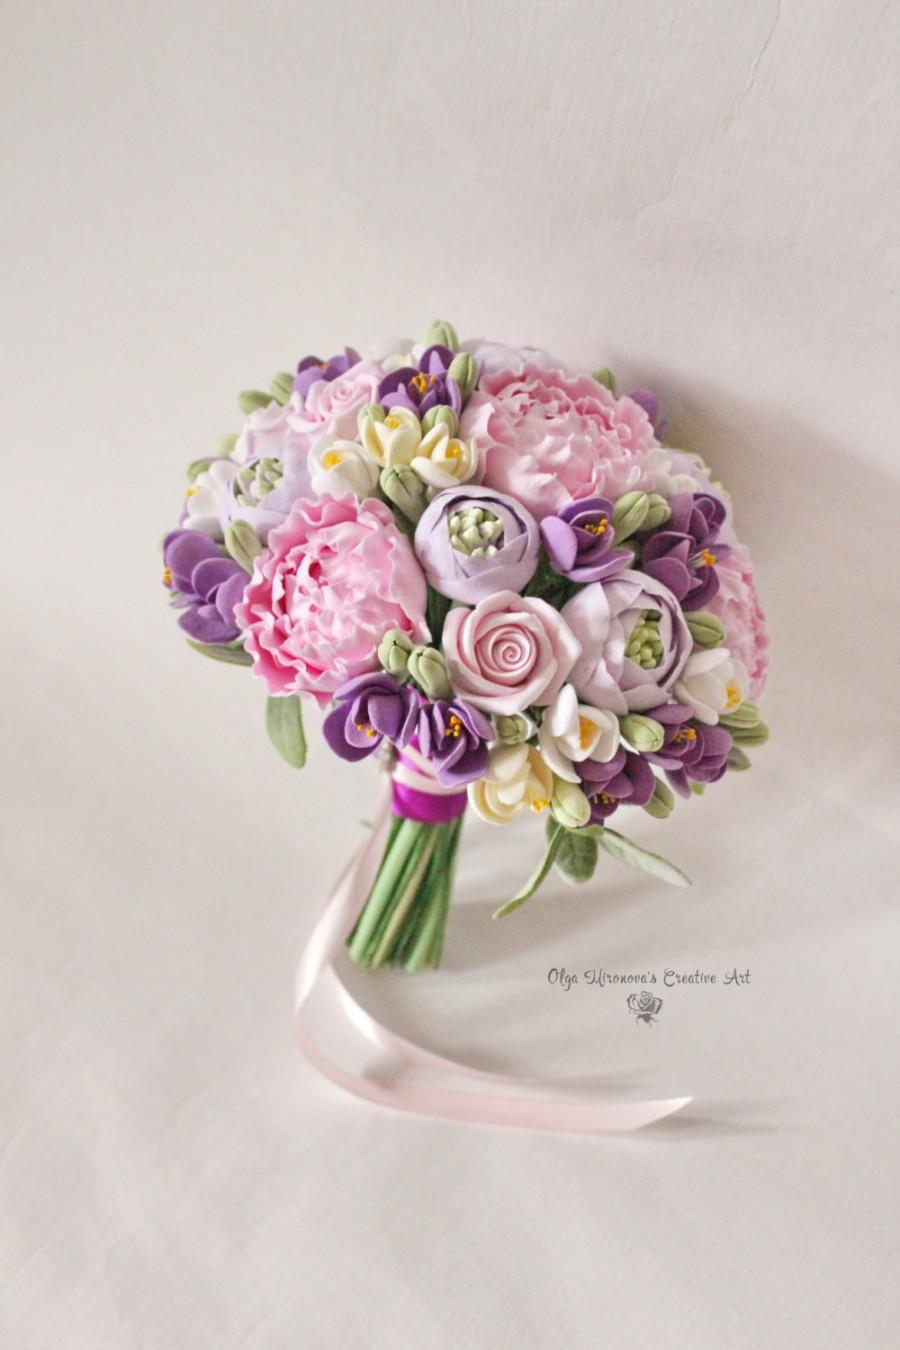 Wedding bridal clay flowers bouquet purple pink romantic bouquet wedding bridal clay flowers bouquet purple pink romantic bouquet hand bouquet guest favor small bridal bouquet pink peony bouquet lavender izmirmasajfo Images